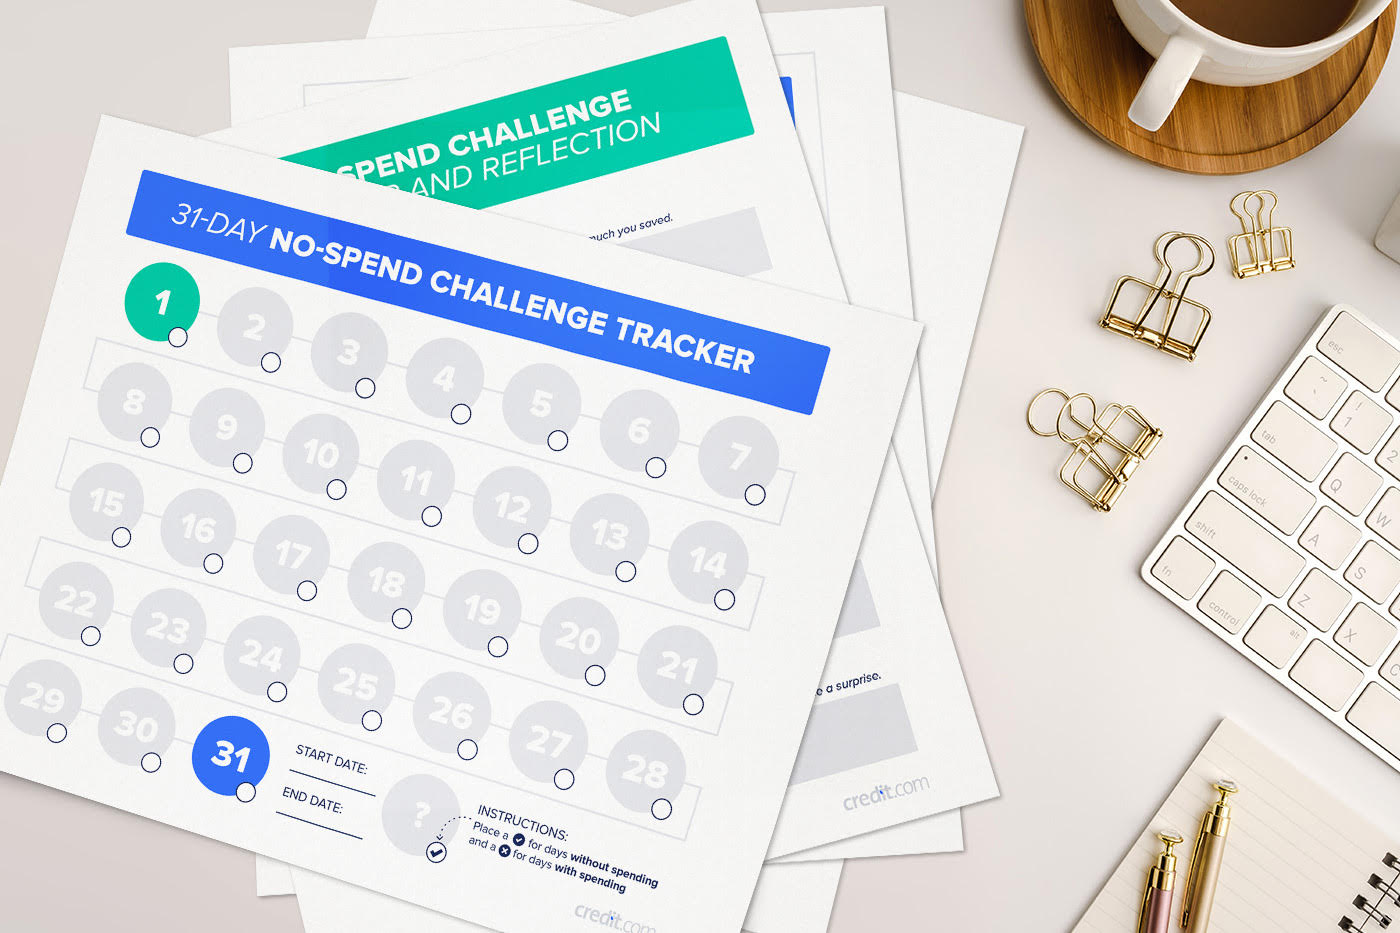 No spend printable! - Check out this free printable to jump start your 'no spend challenge'!